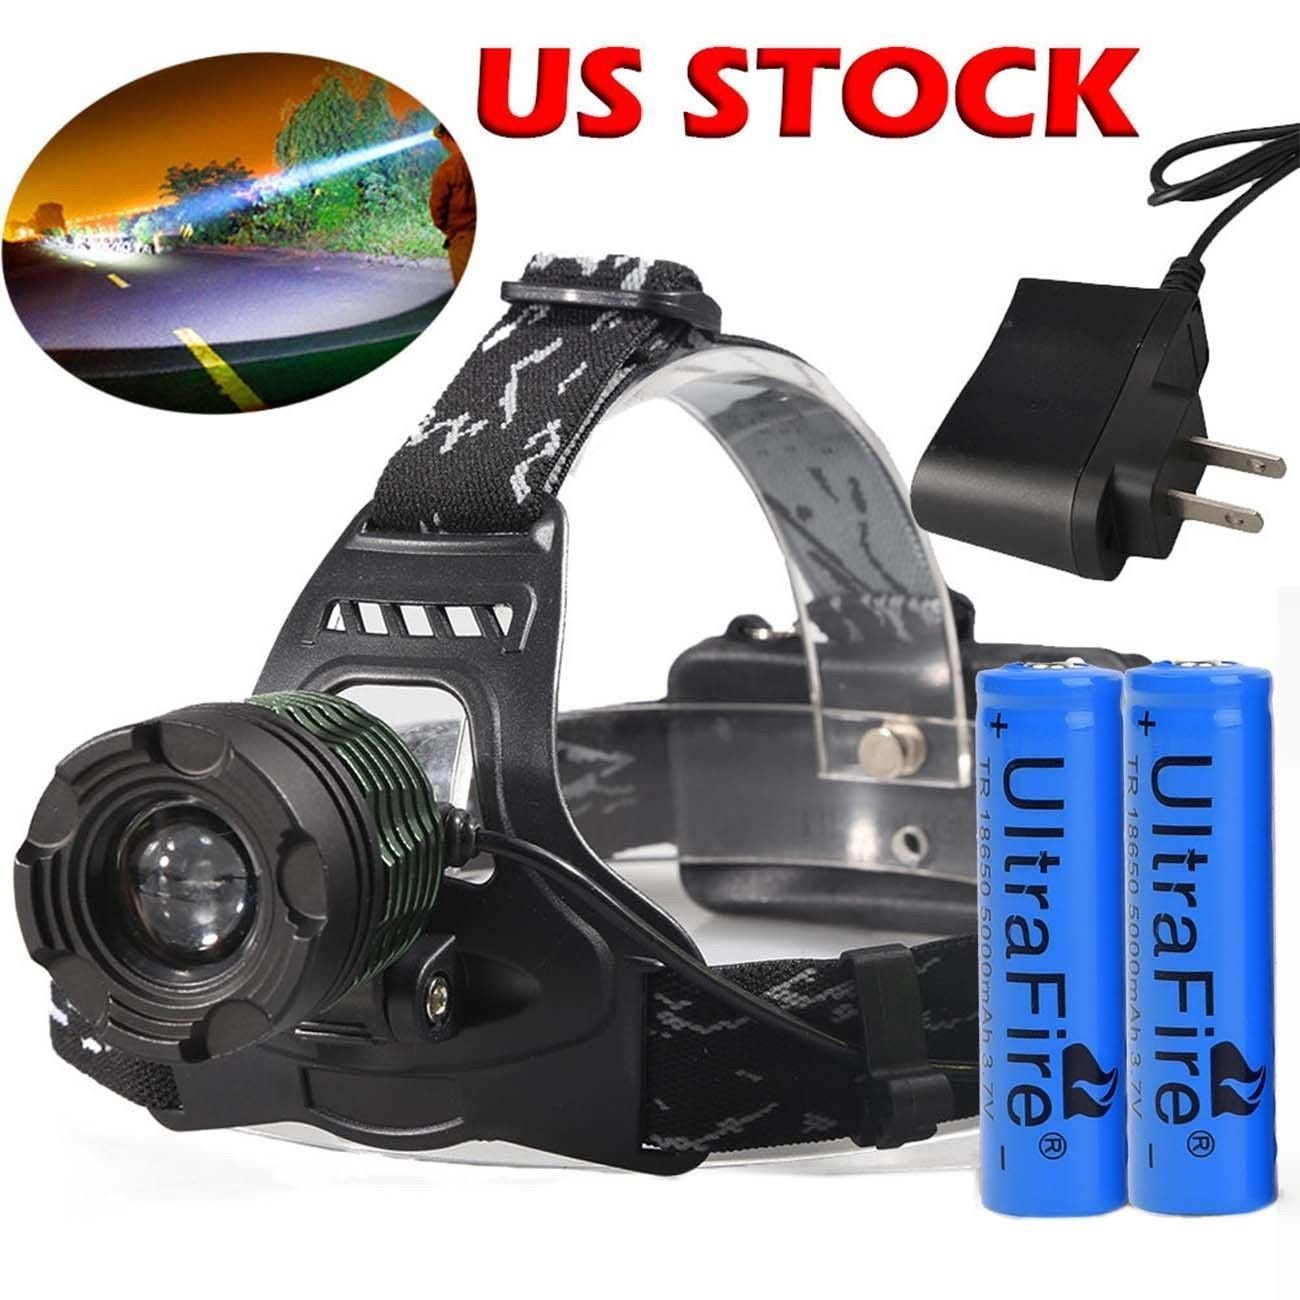 Amazon.com: 10000LM UltraFire High Power Headlamp T6 LED ...